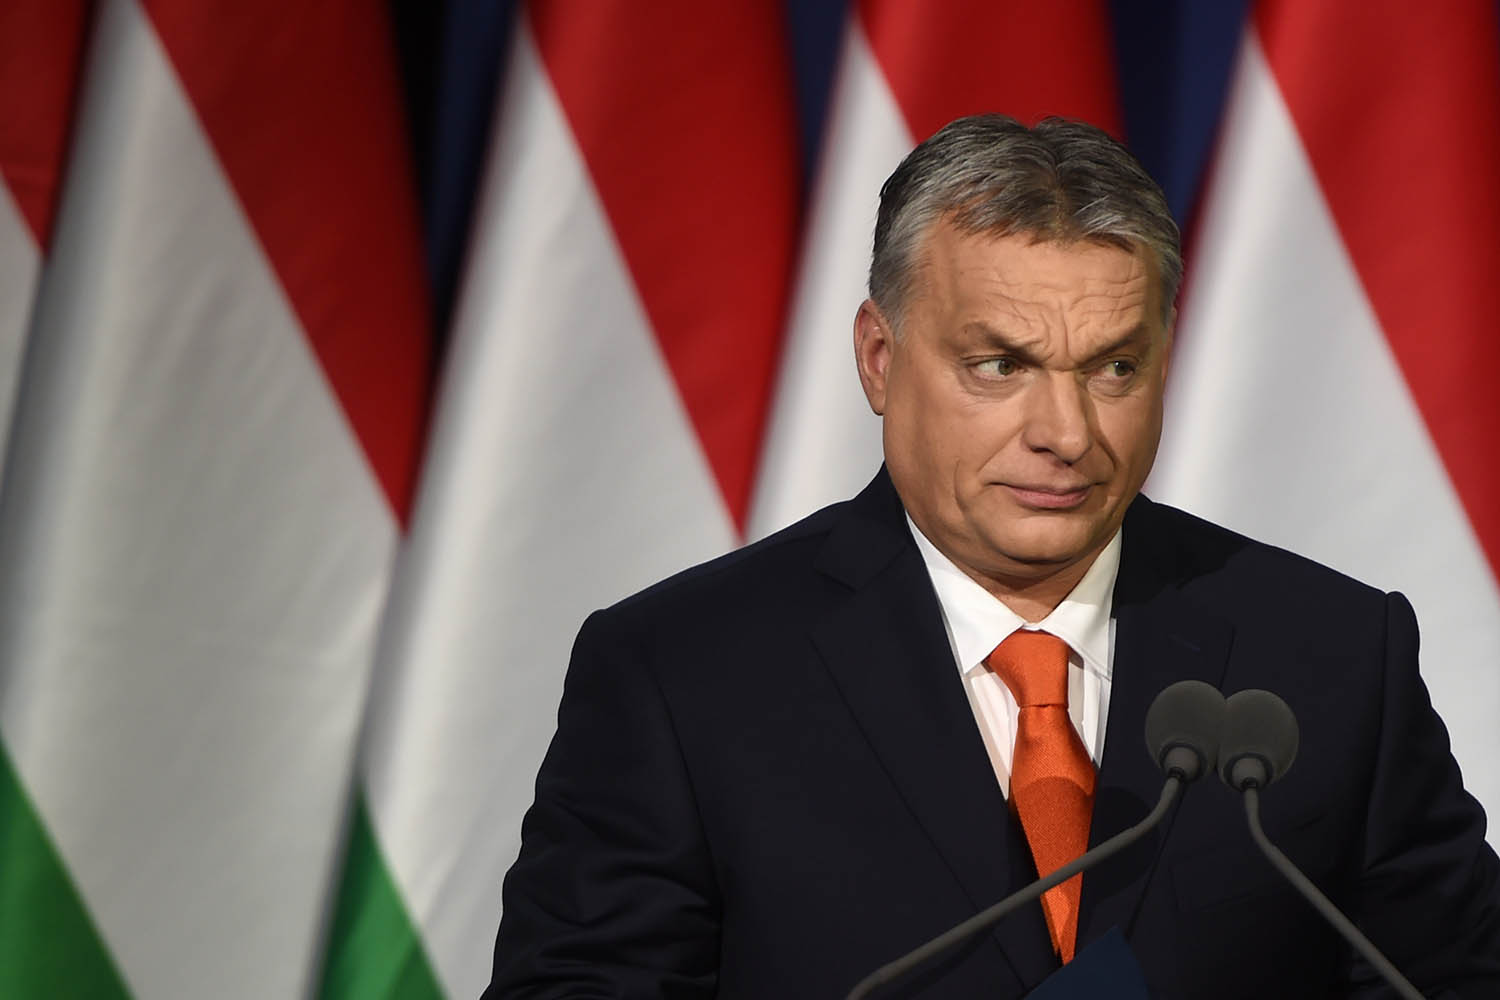 """The Hungarian government has decided to maintain the restriction on mass events attended by more than 500 people after Aug. 15, Gergely Gulyas, head of the Prime Minister's Office, said here on Thursday. """"Our goal is to curb the second wave of the epidemic so that the school year can start normally on Sept. 1,"""" […]"""